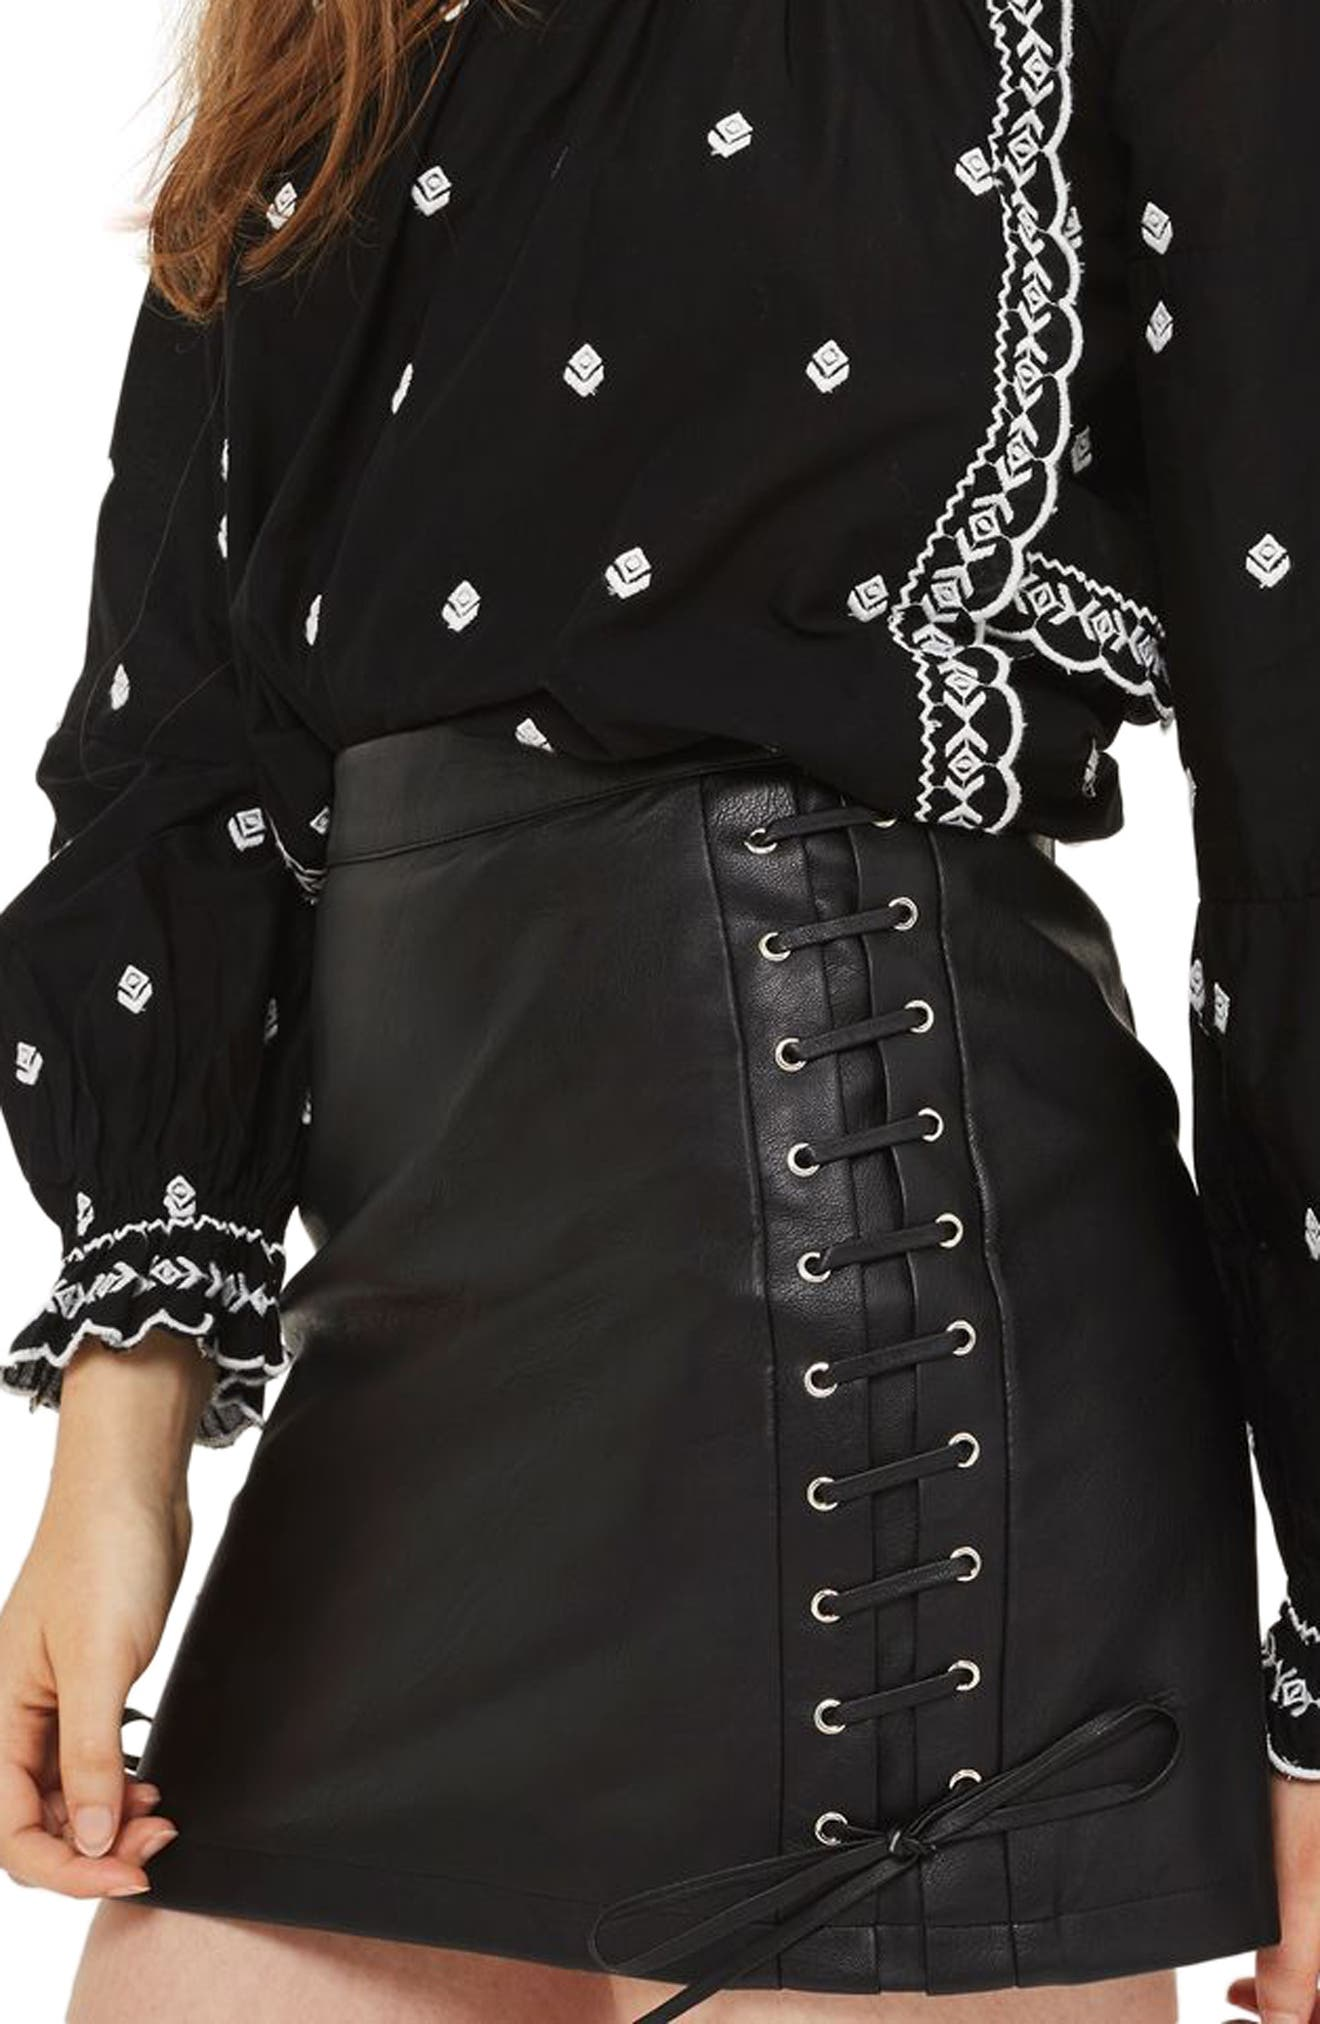 Topshop Lace-Up Faux Leather Miniskirt